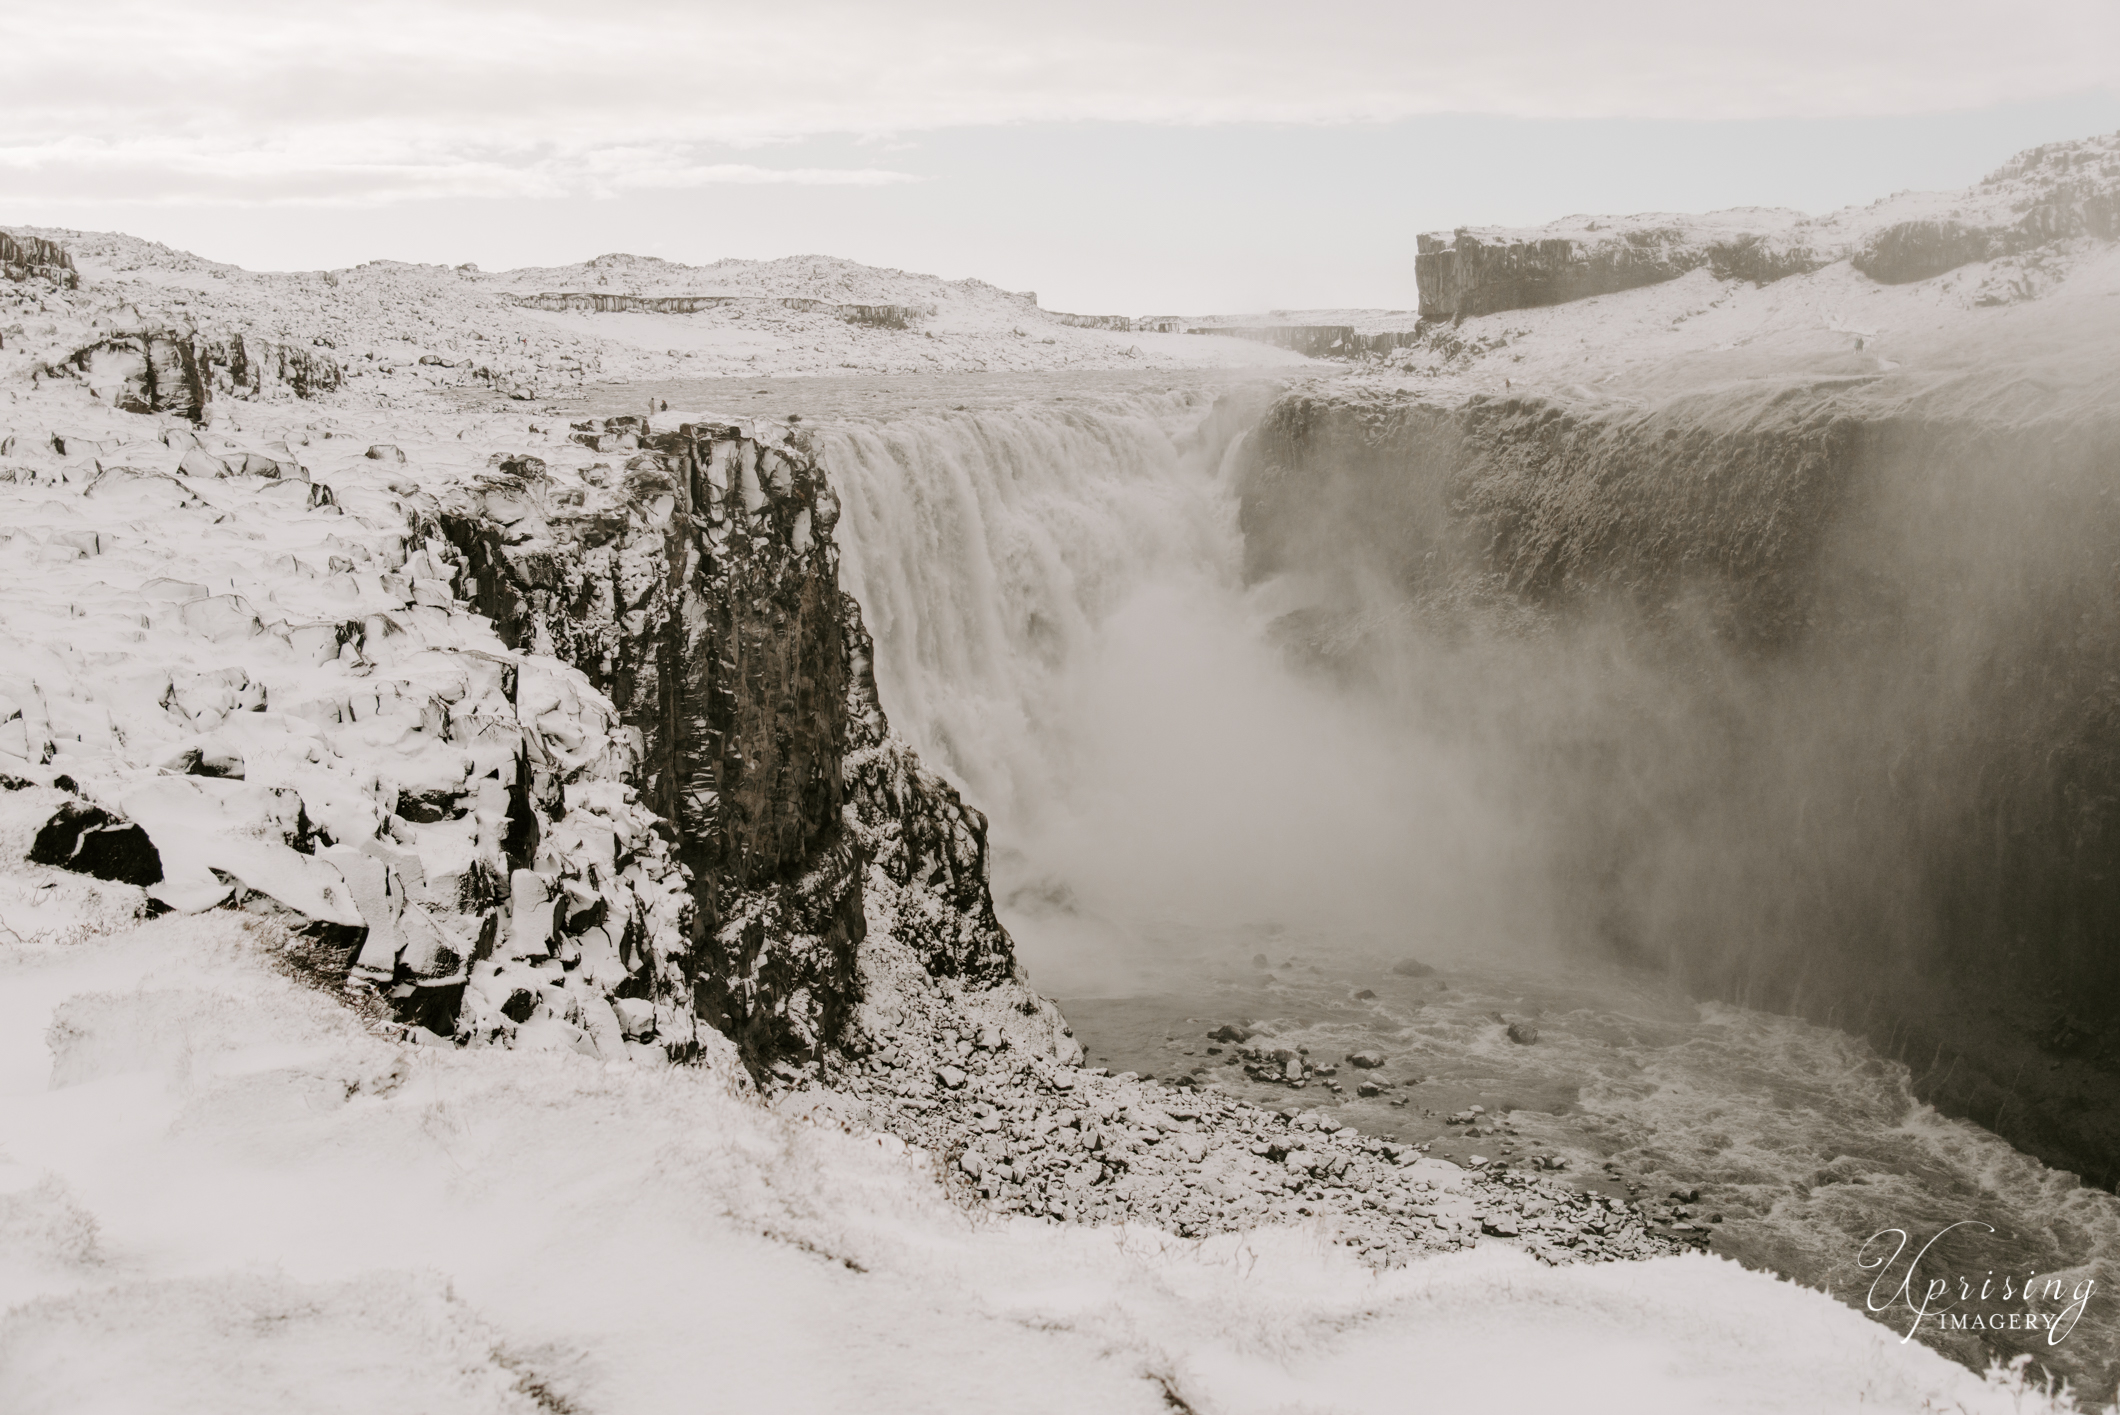 Dettifoss - The falls are 100 metres (330 ft) wide and have a drop of 44 metres (144 ft) down to the Jökulsárgljúfur canyon. It is the largest waterfall in Icelandin terms of volume discharge, having an average water flow of 193 m³/s